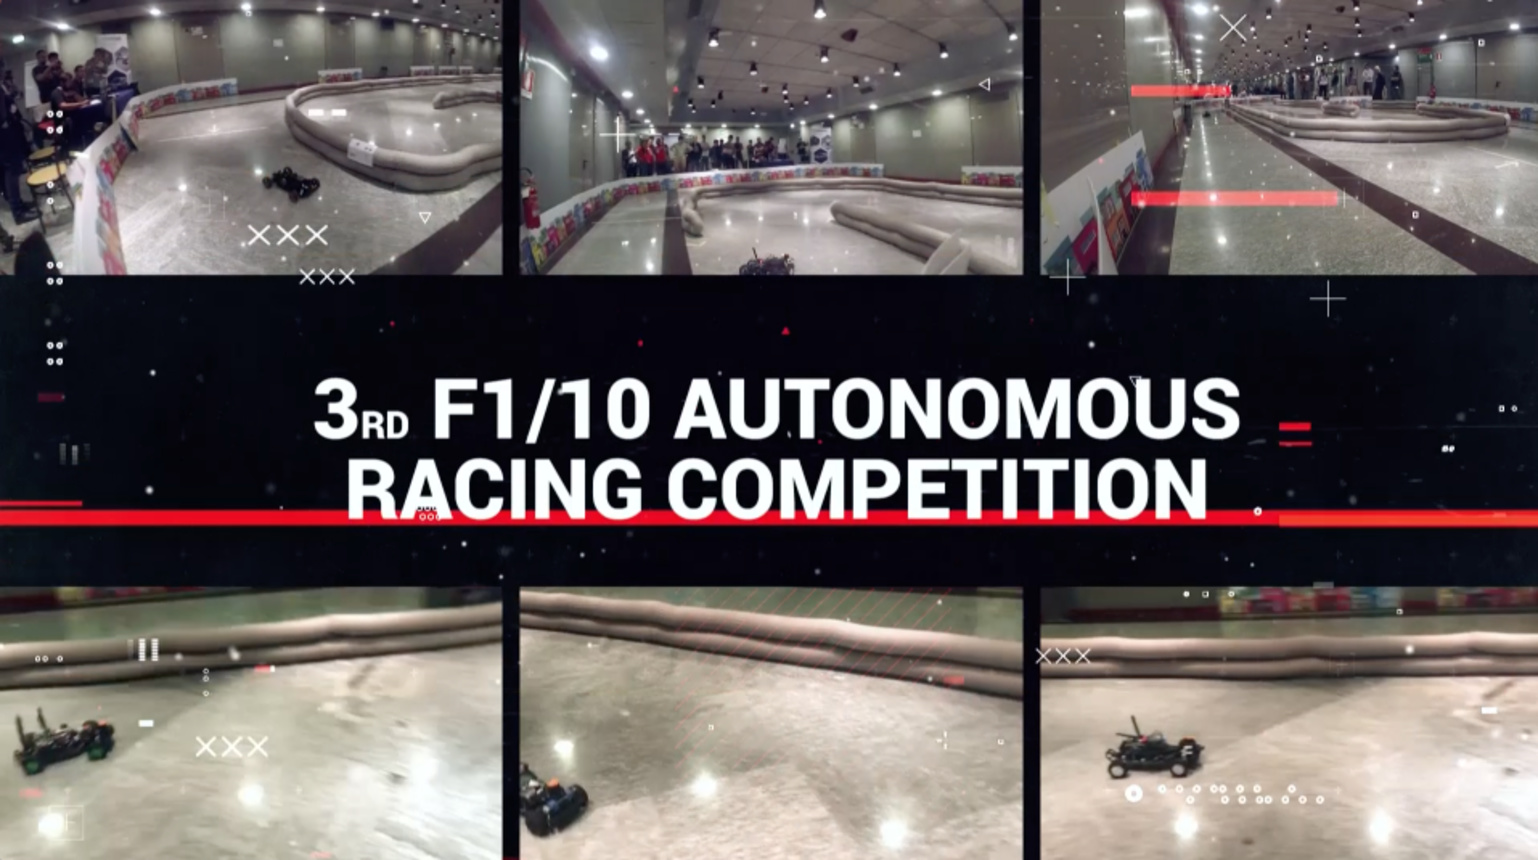 3rd F1/10 Autonomous Racing Competition 2018 - Torino, Italy